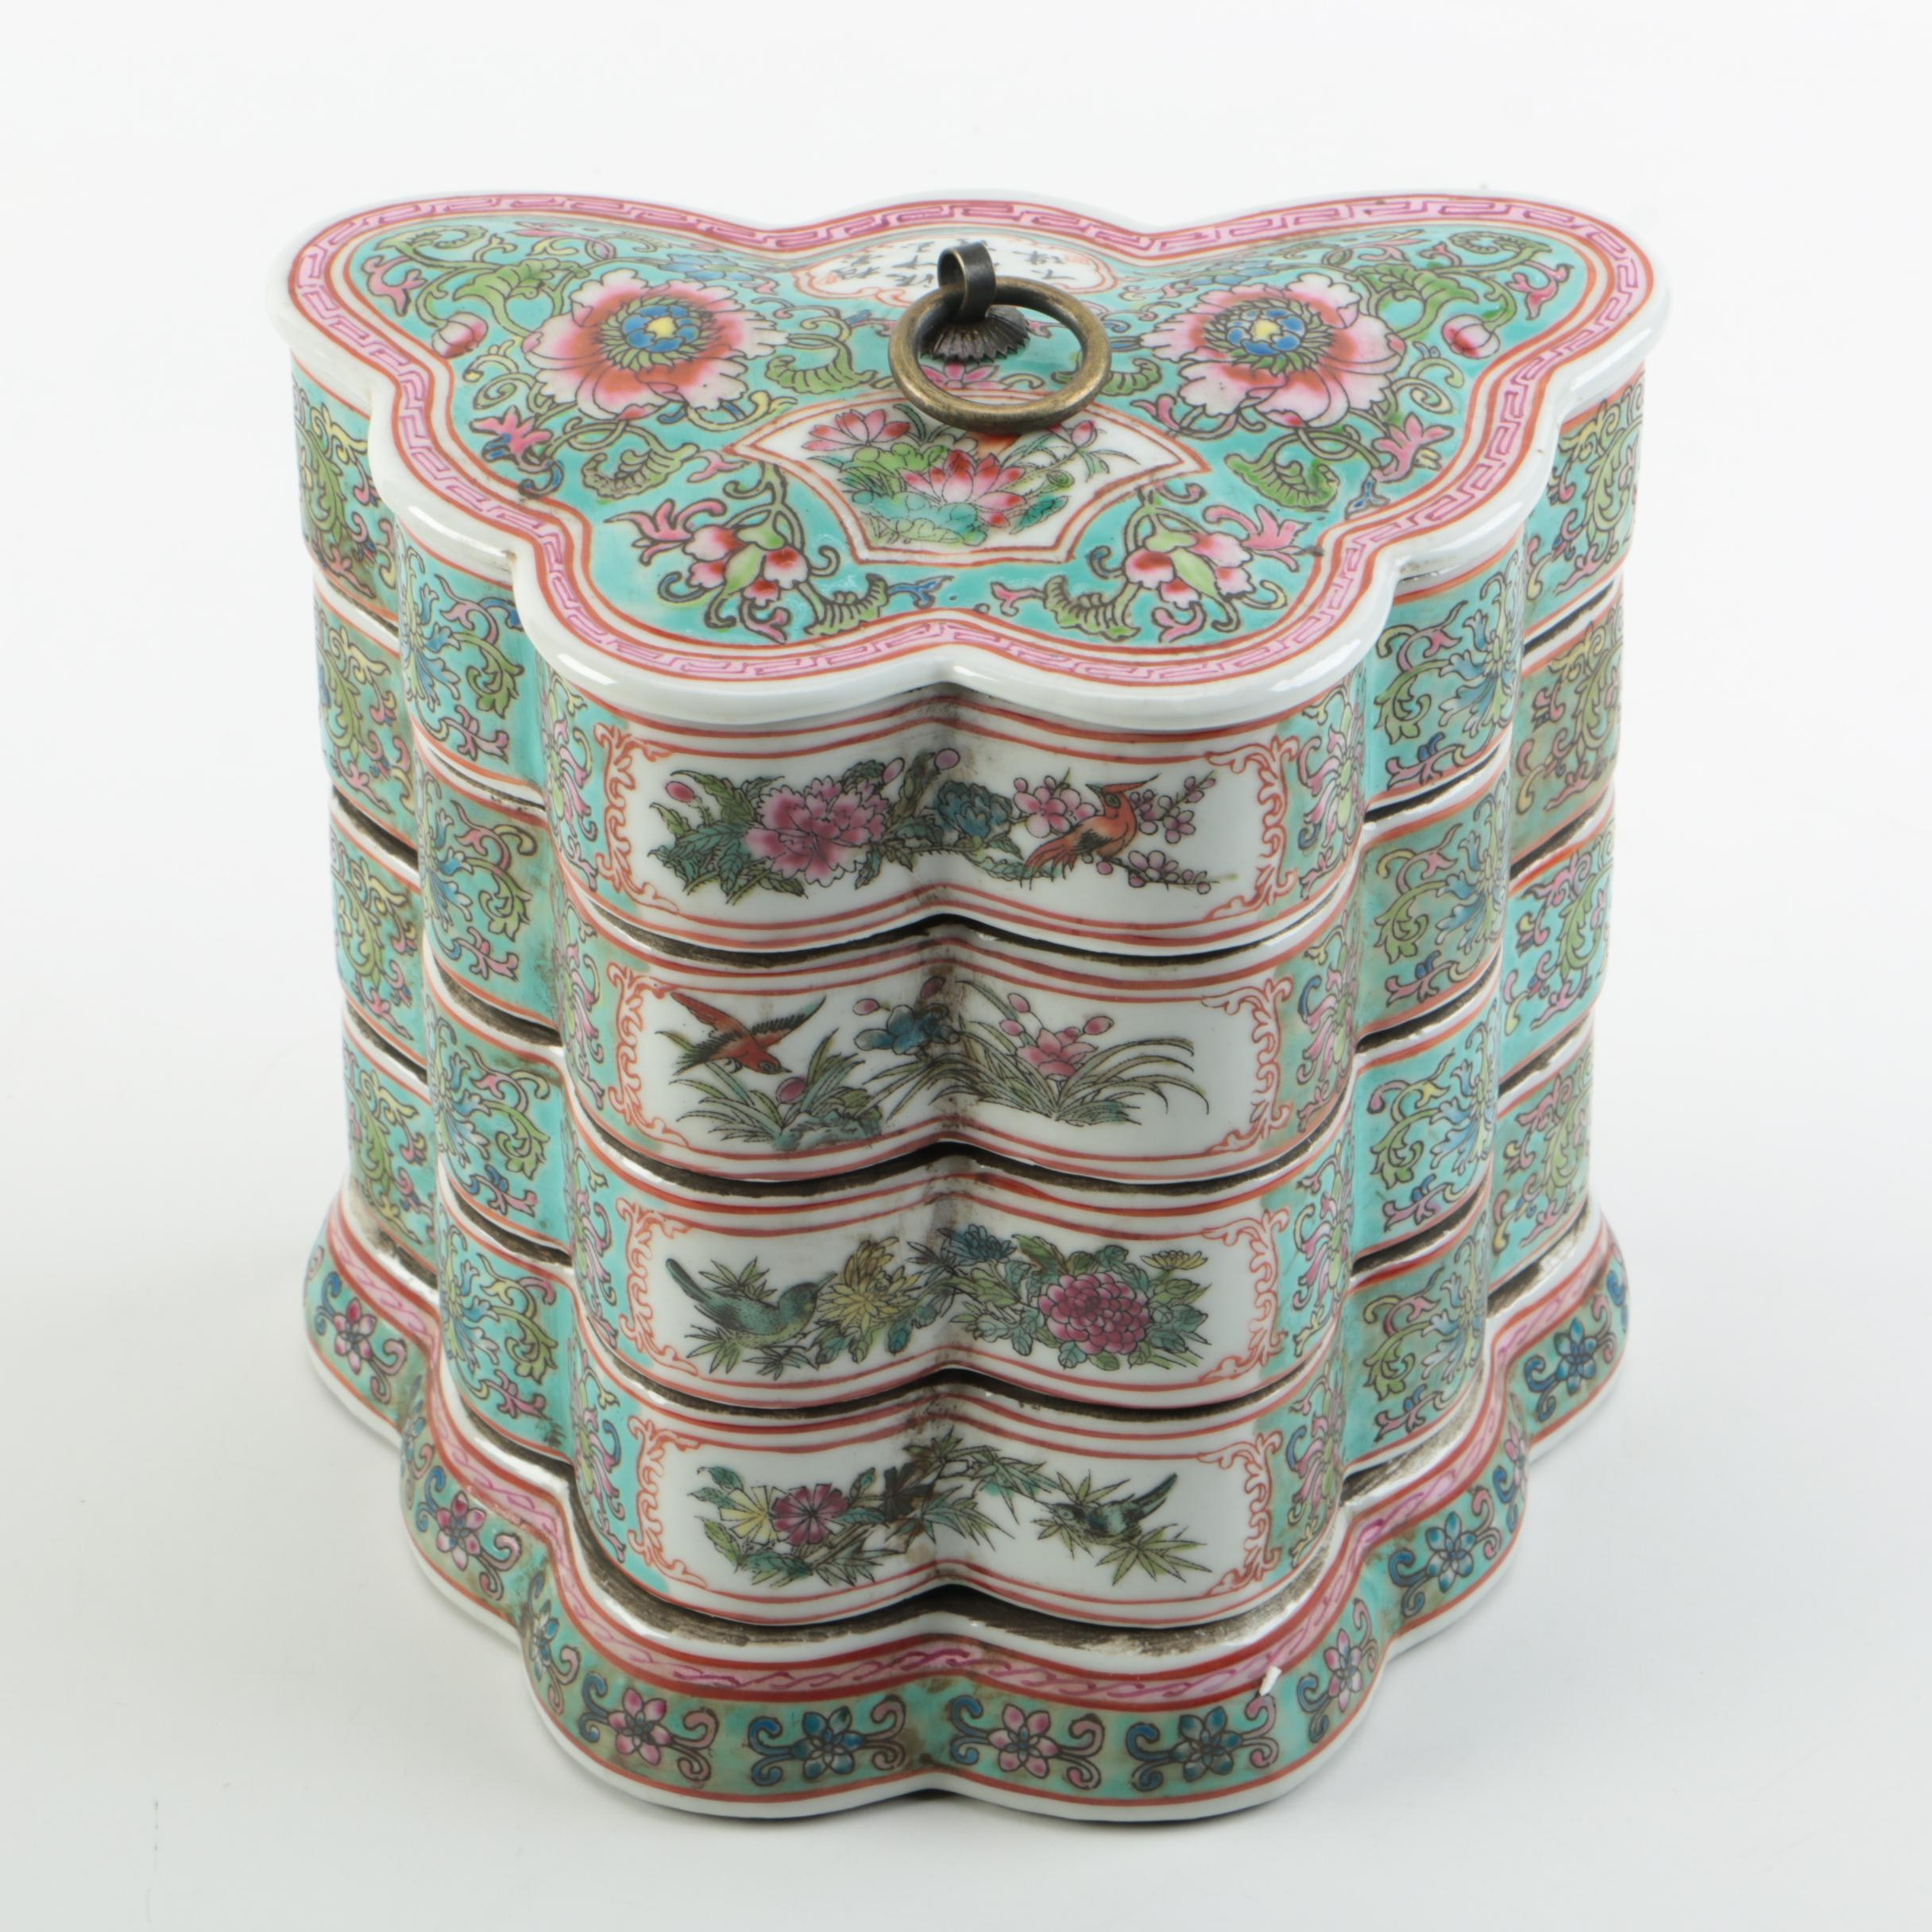 Chinese Famille Rose Porcelain Stacking Butterfly Dishes